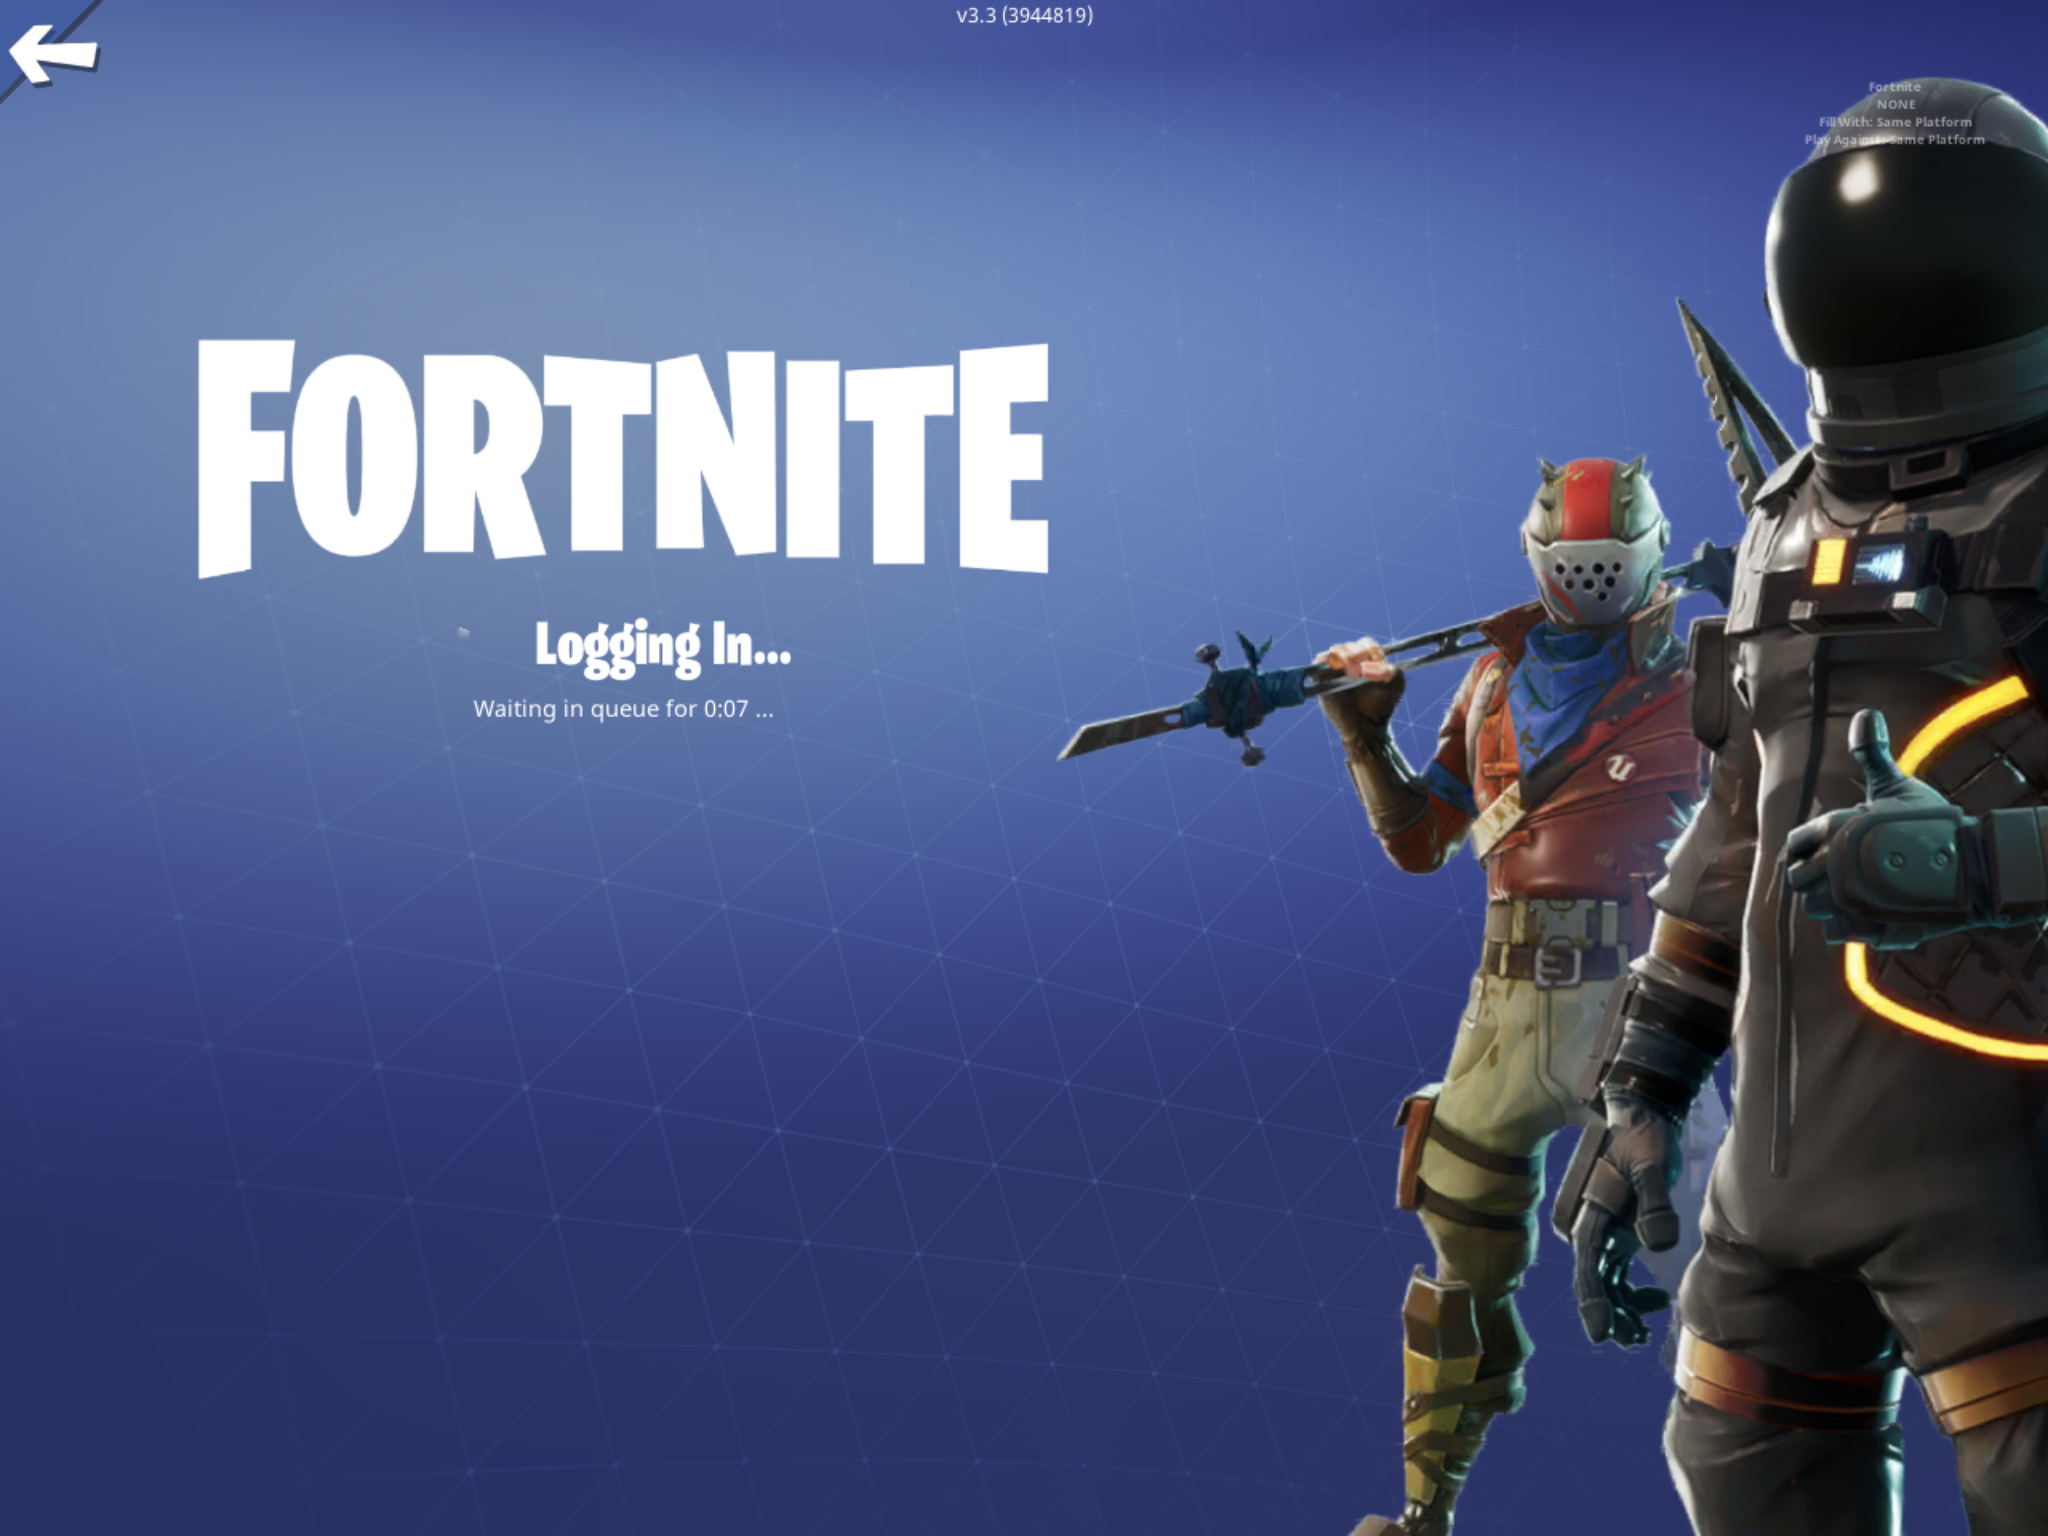 Fortnite: How To Download 'Fortnite Mobile': IOS Invite Links